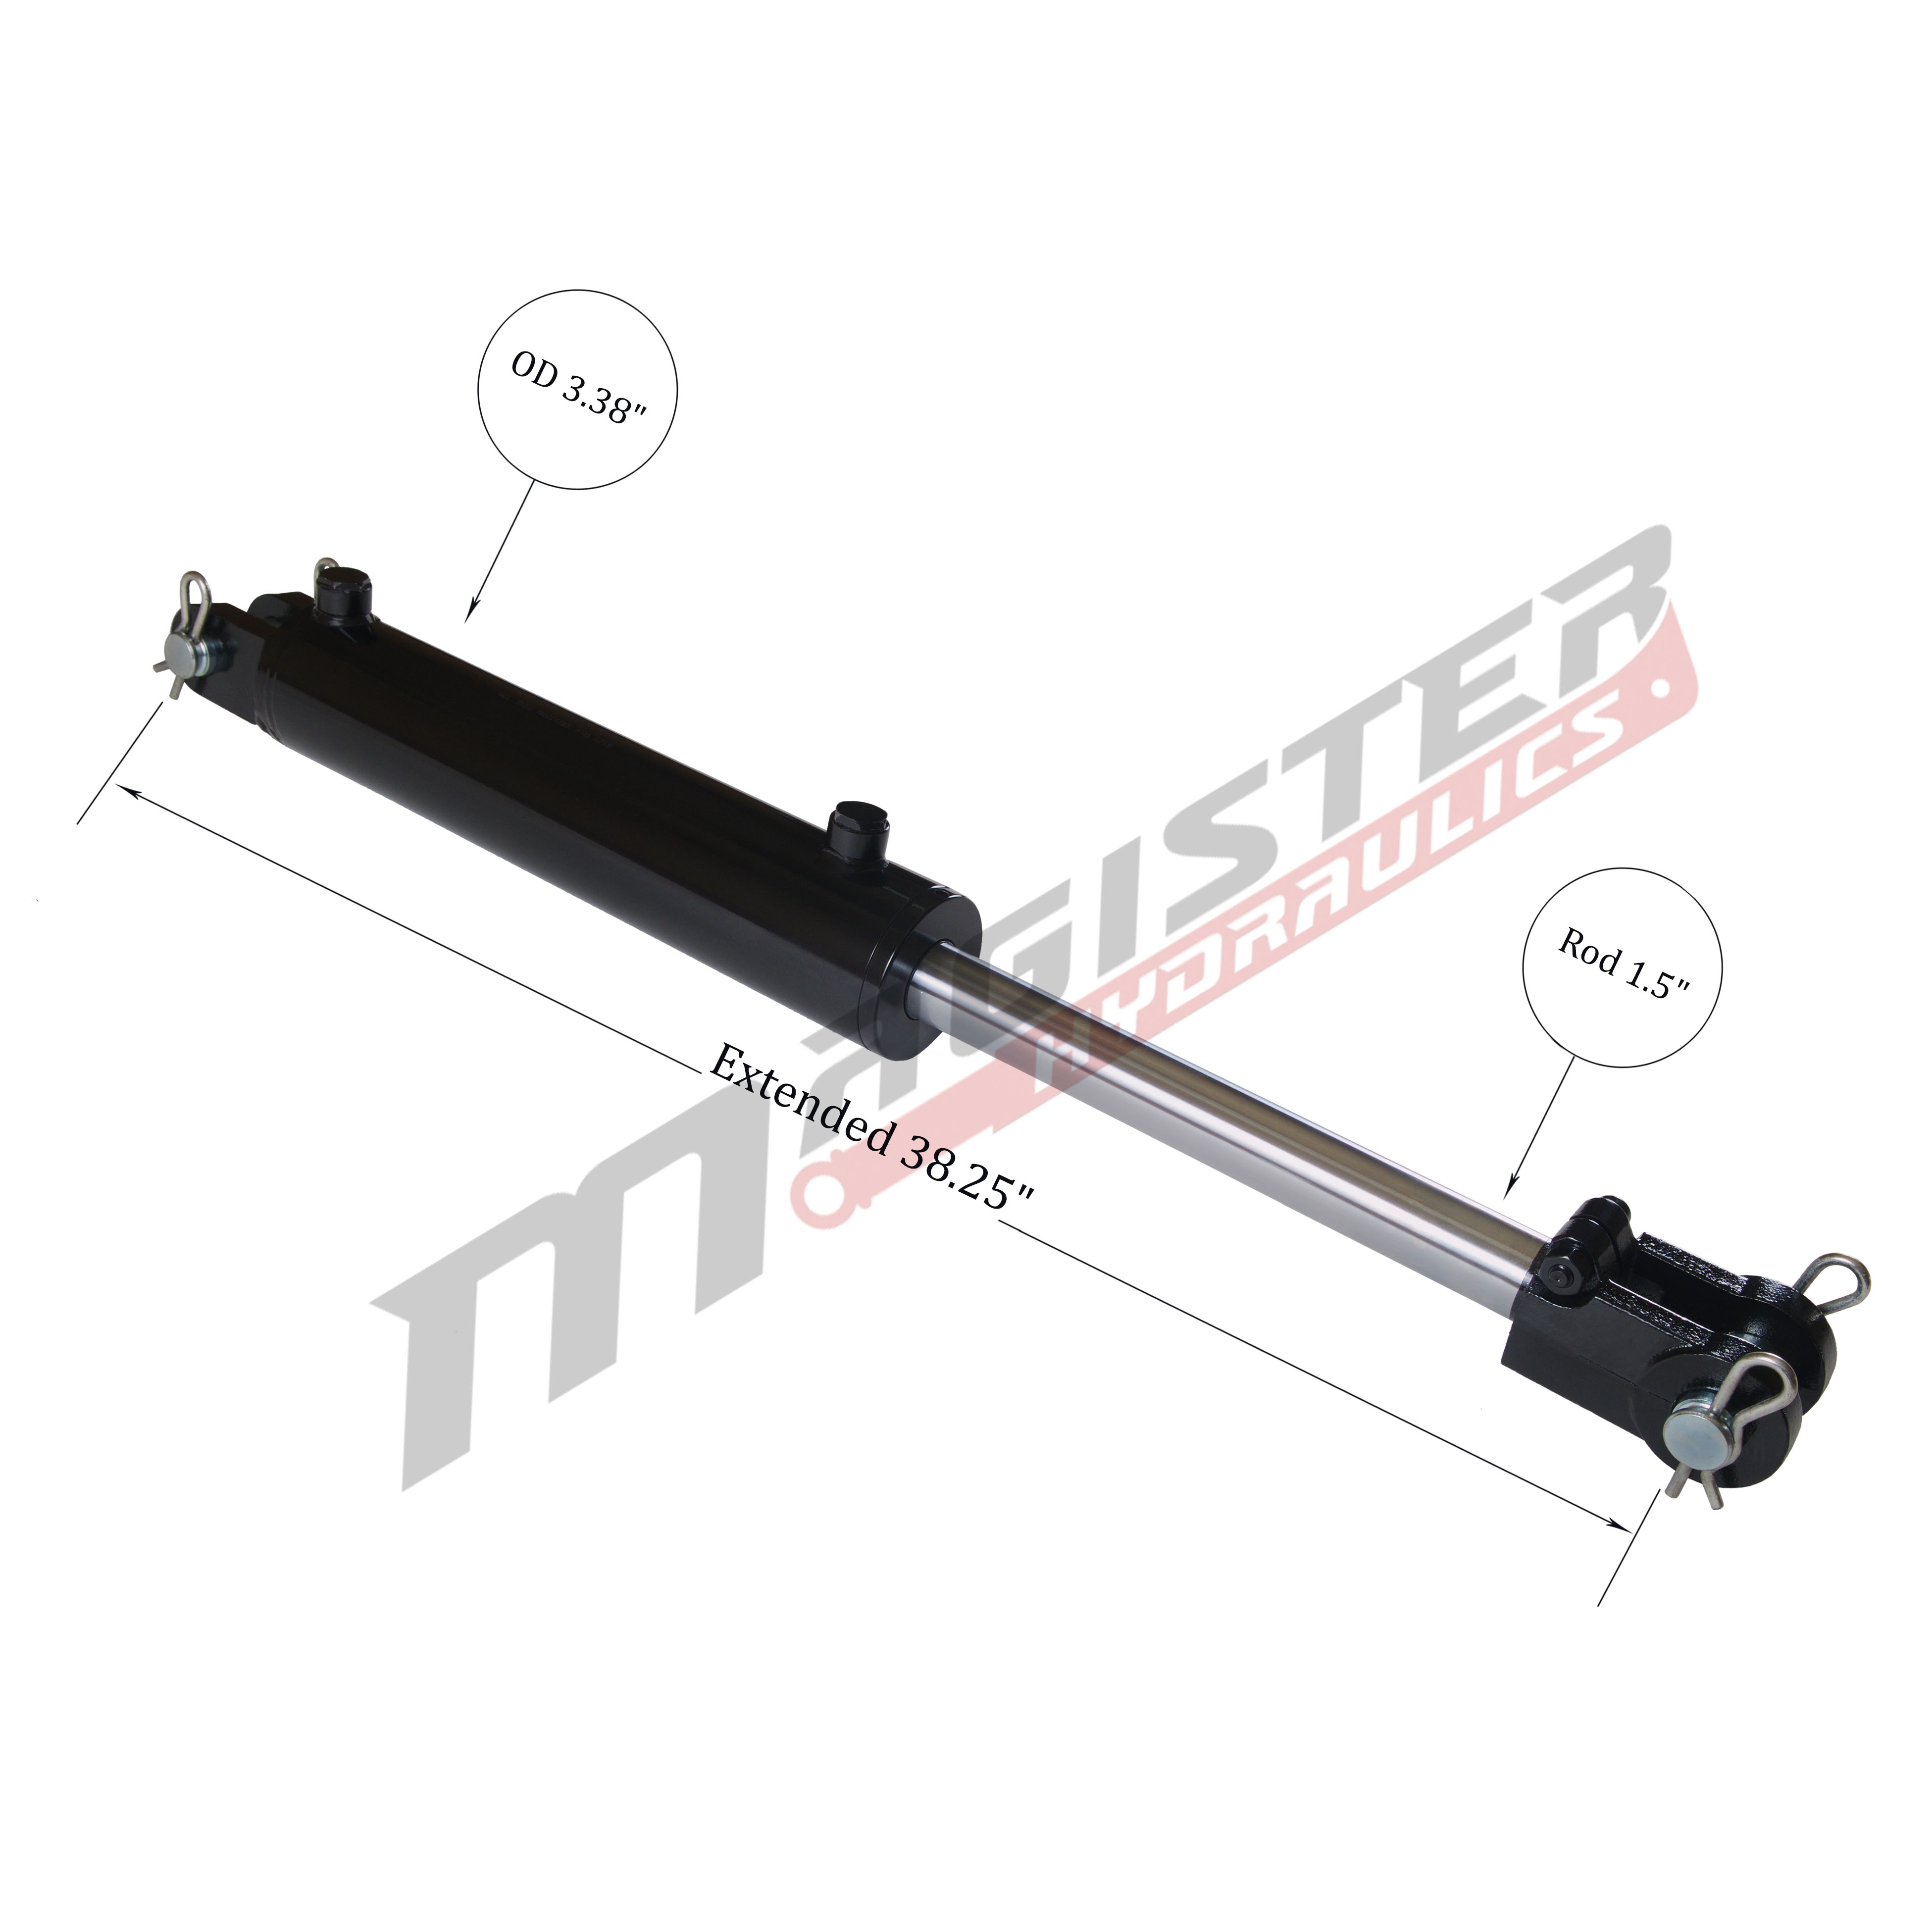 3 bore x 14 stroke hydraulic cylinder, welded clevis double acting cylinder | Magister Hydraulics